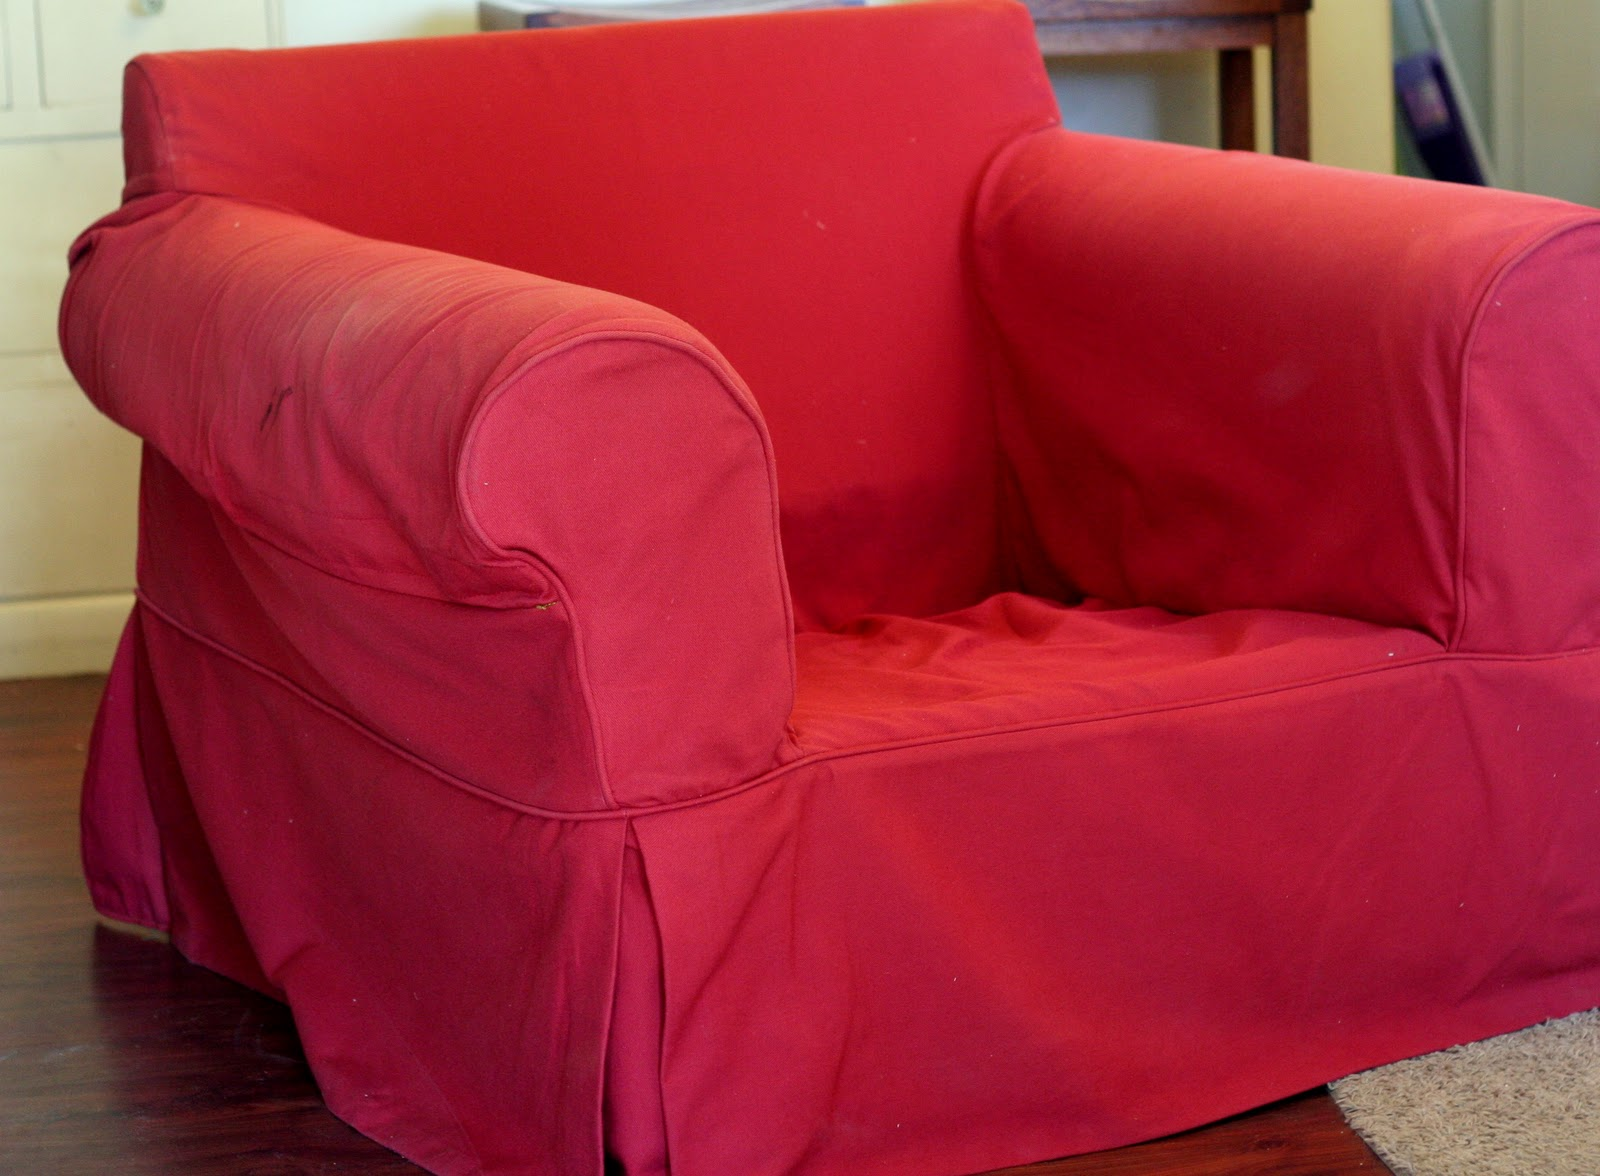 Slipcover For Oversized Chair And Ottoman